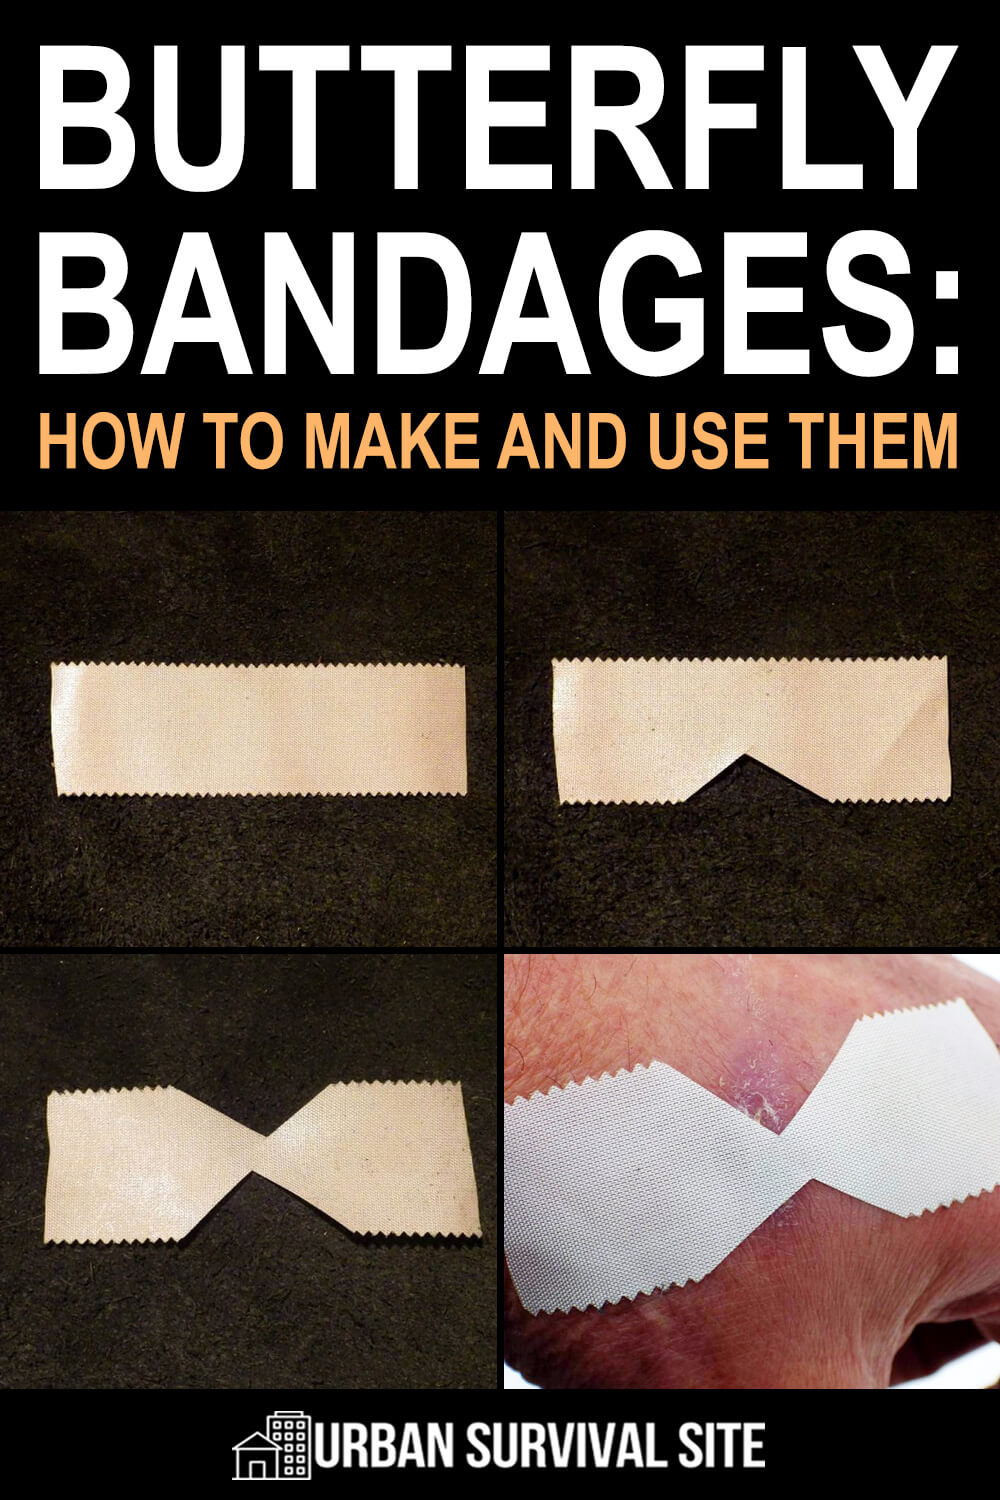 Butterfly Bandages: How To Make and Use Them